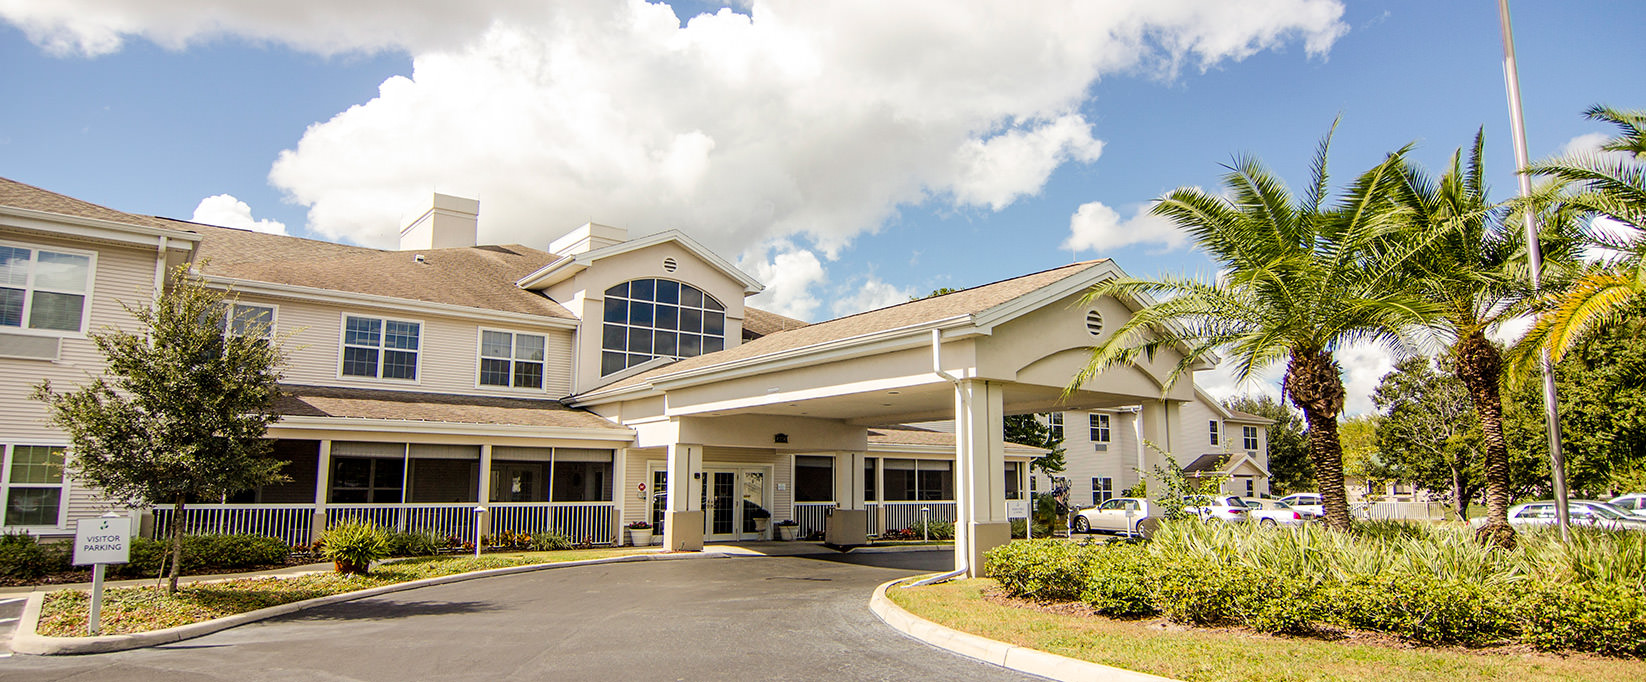 Assisted Living And Memory Care In Lakeland Florida Alzheimers